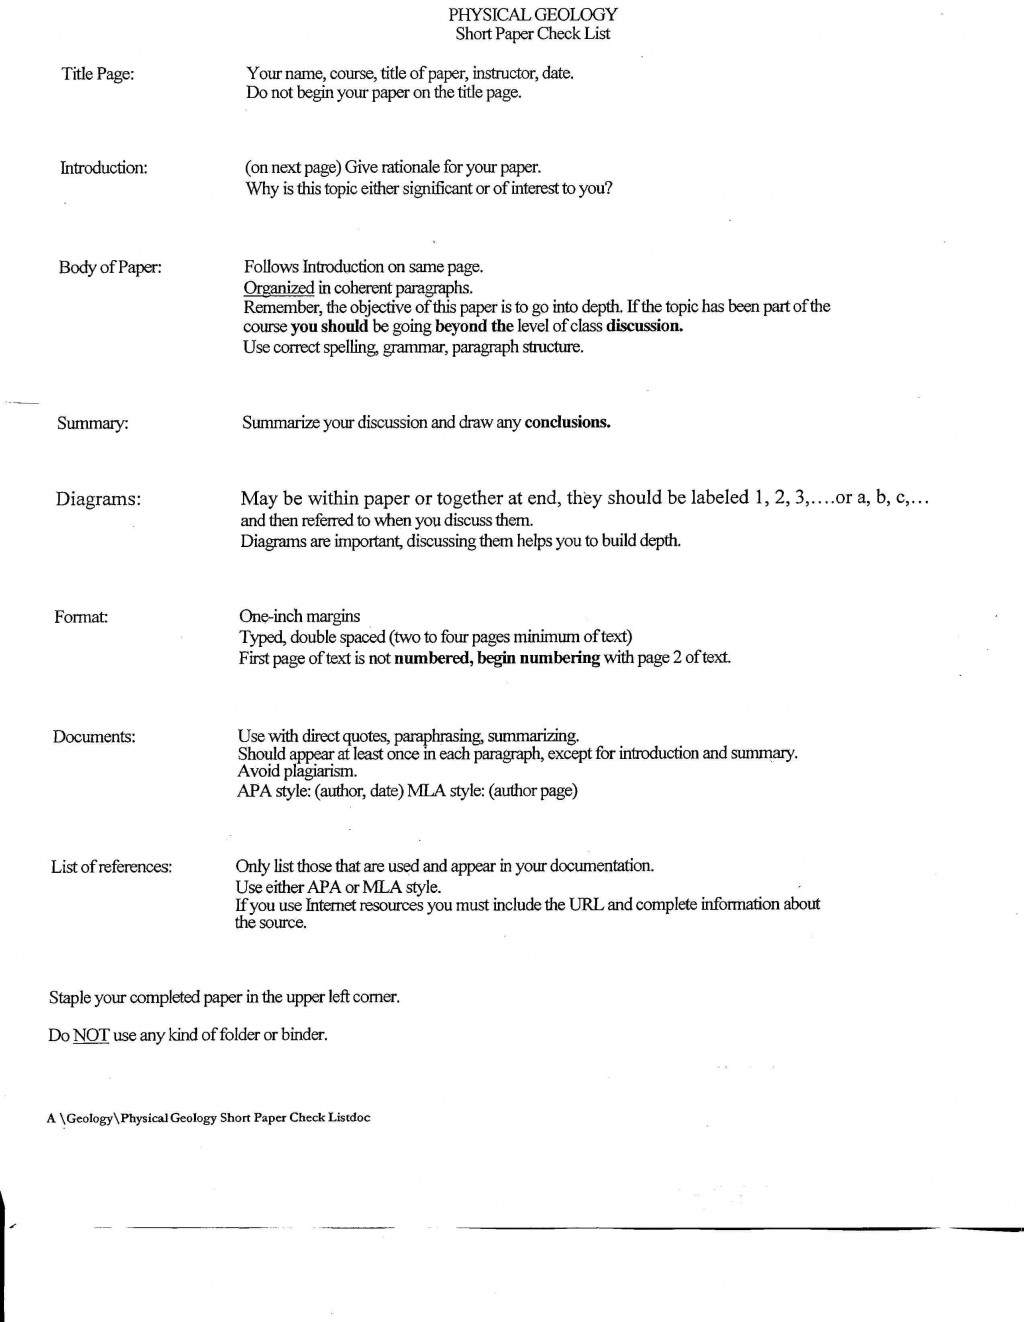 009 Short Paper Checklist Academic Research Fantastic Structure Large